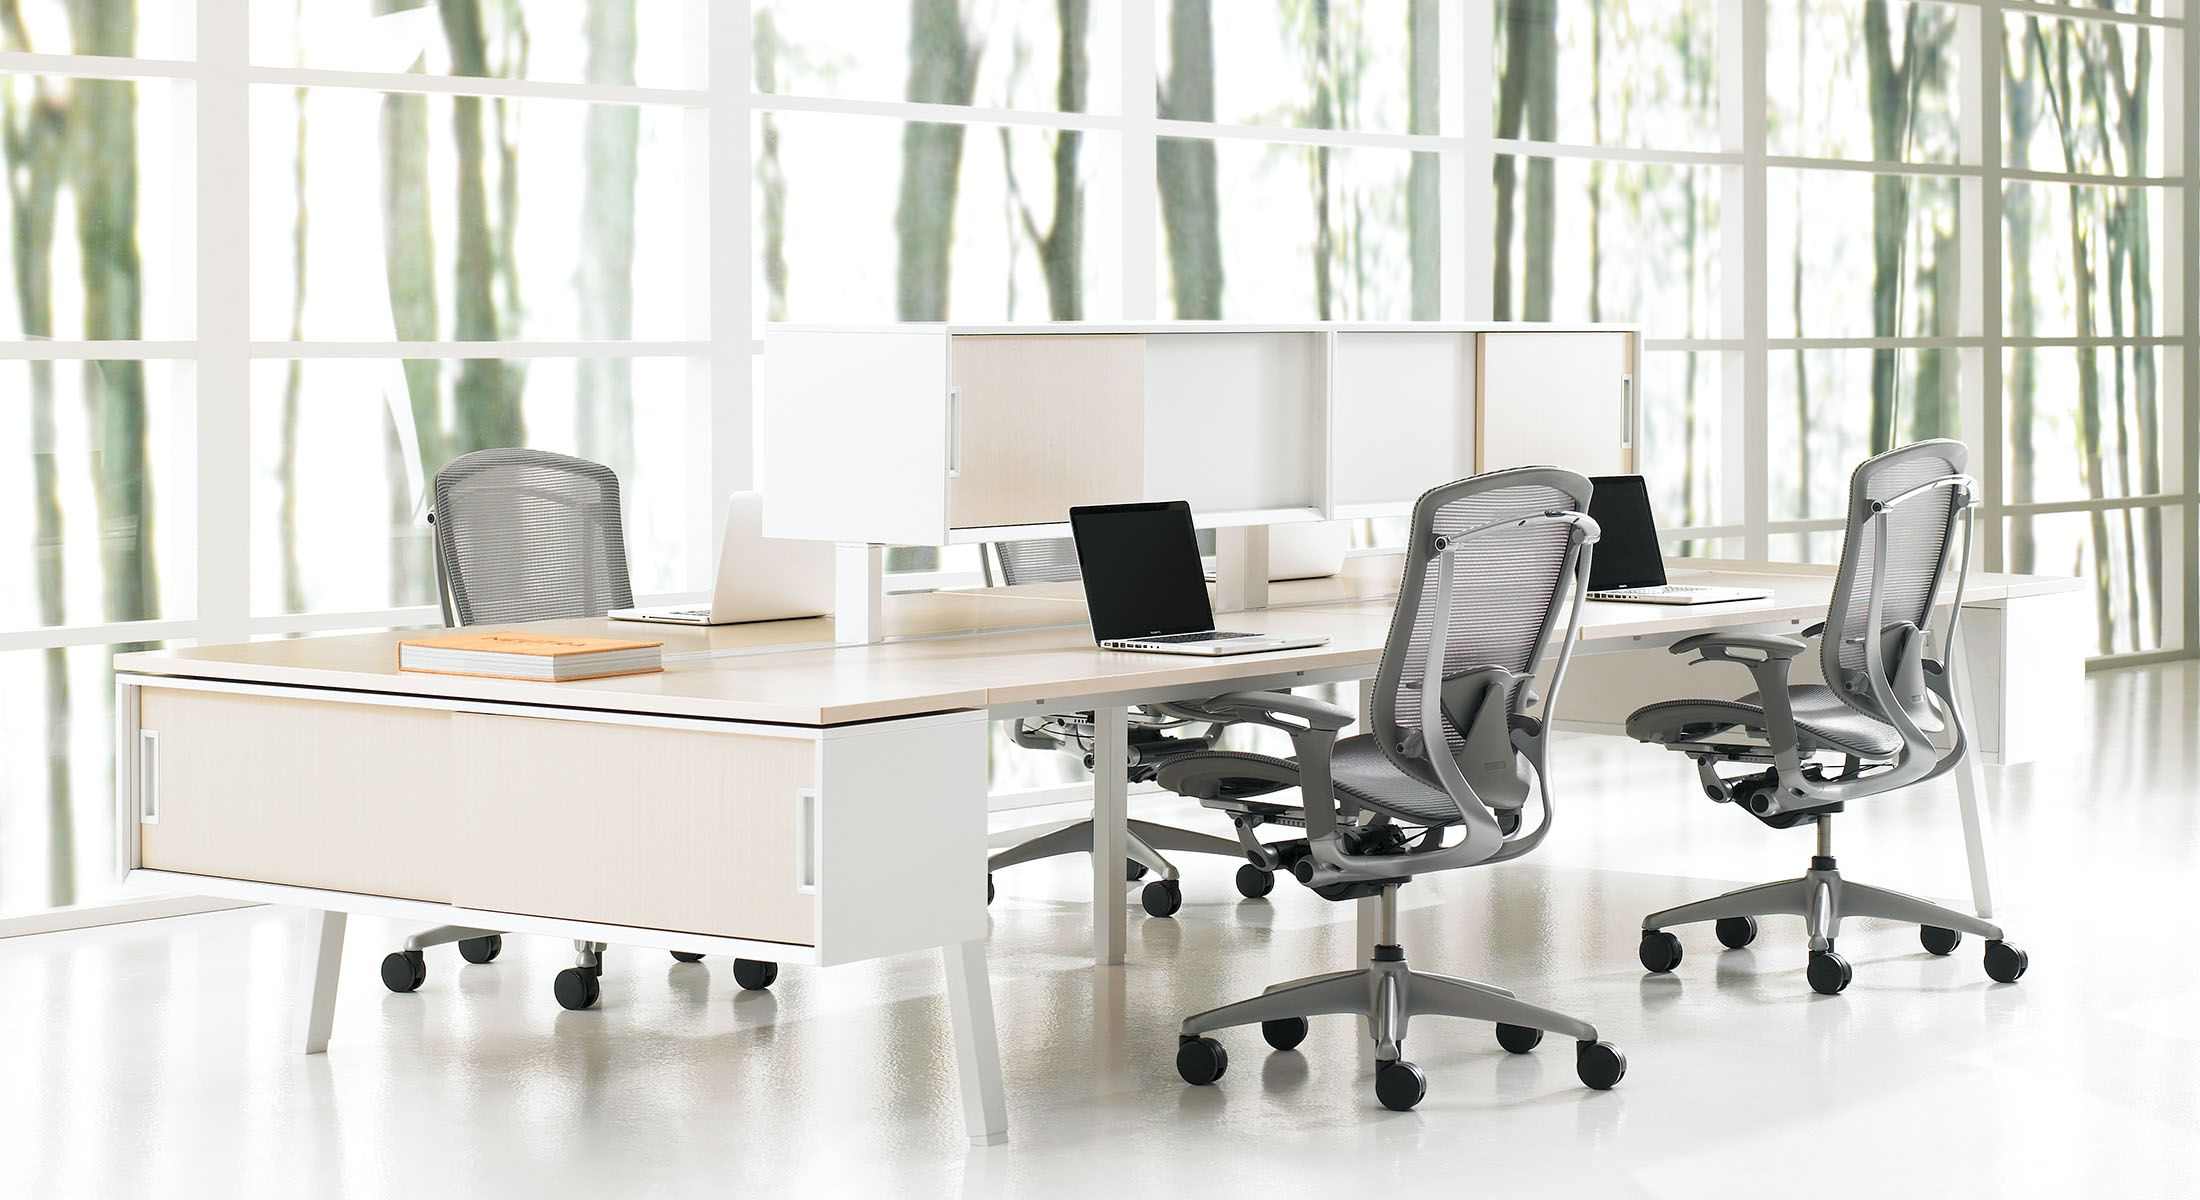 Transit Panel System Teknion Office Furniture workstations